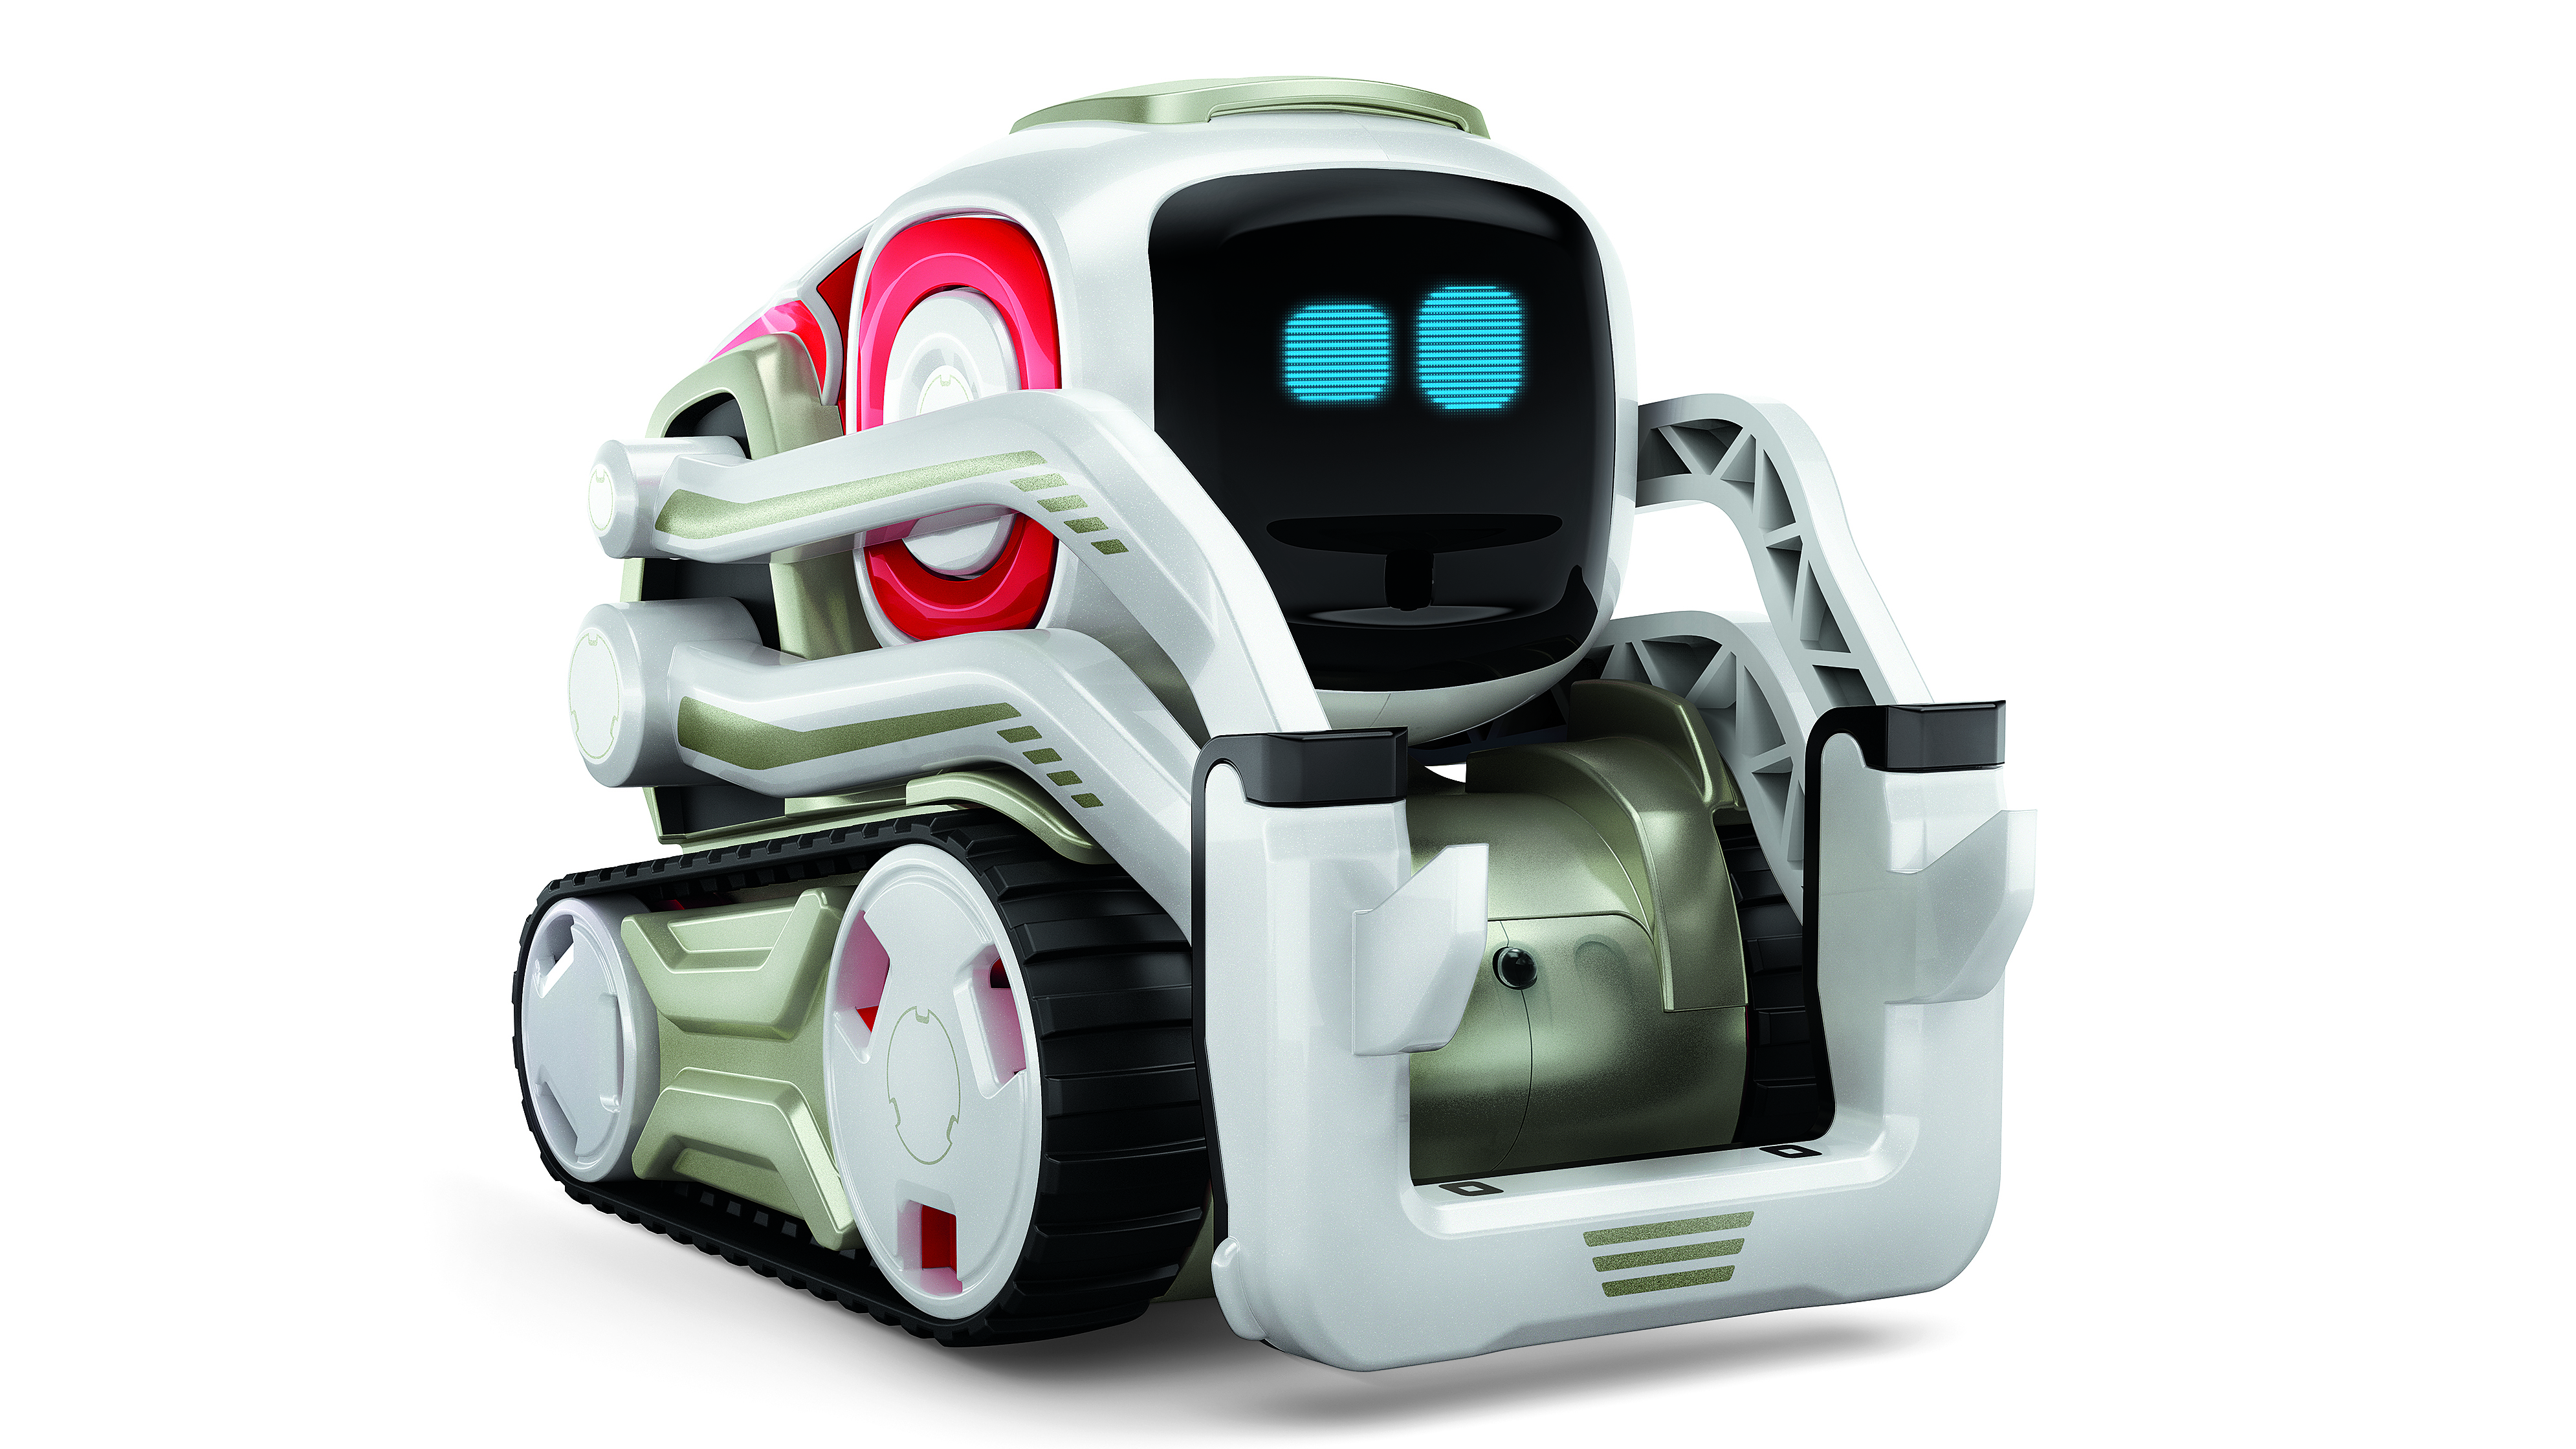 You can get £50 off the Anki Cozmo when you donate toys to Barnados